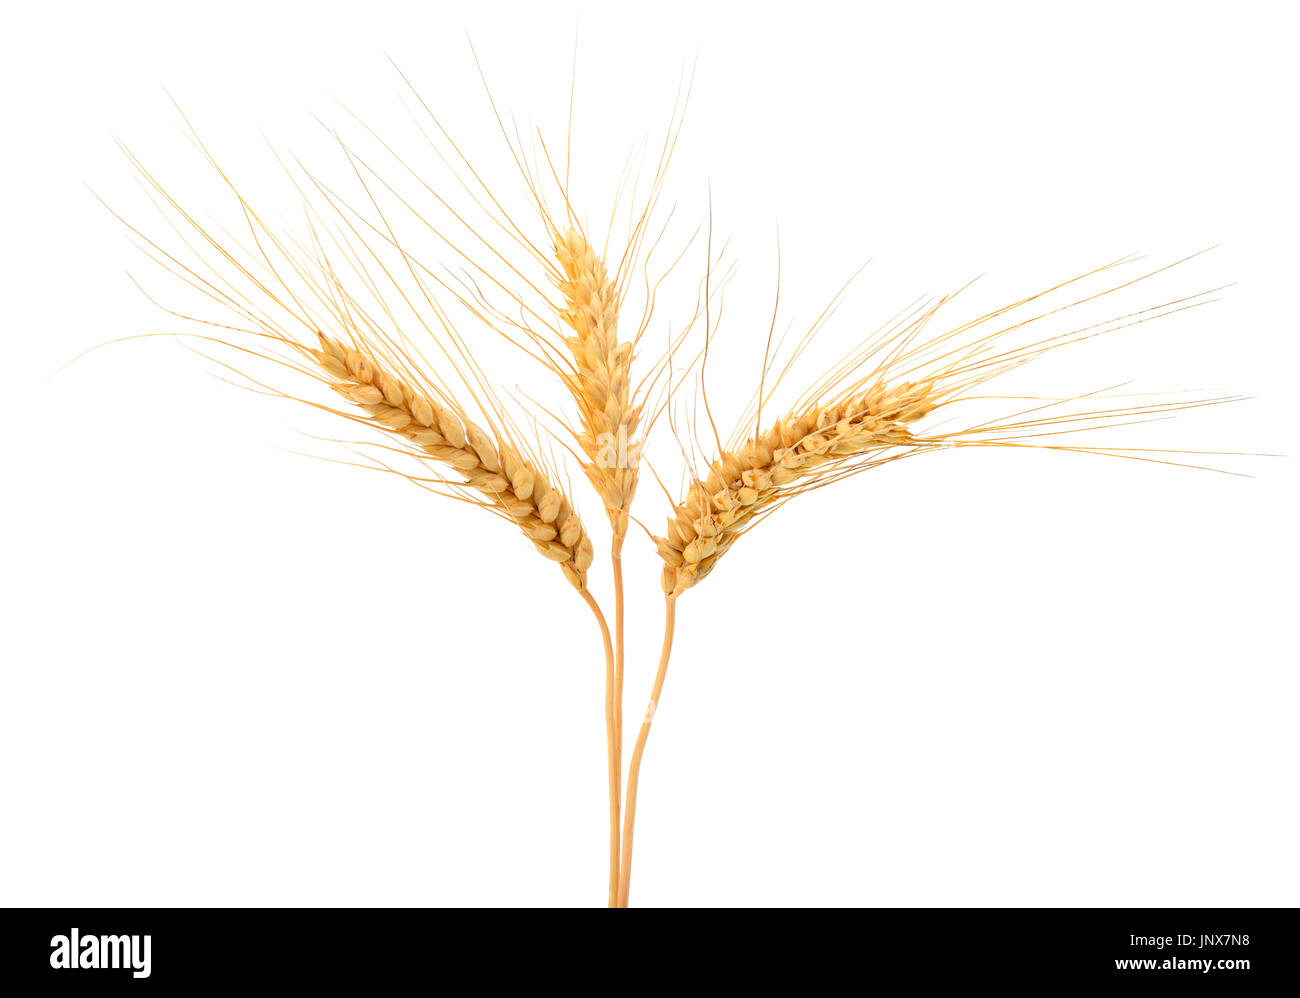 Wheat ears isolated on white background. - Stock Image